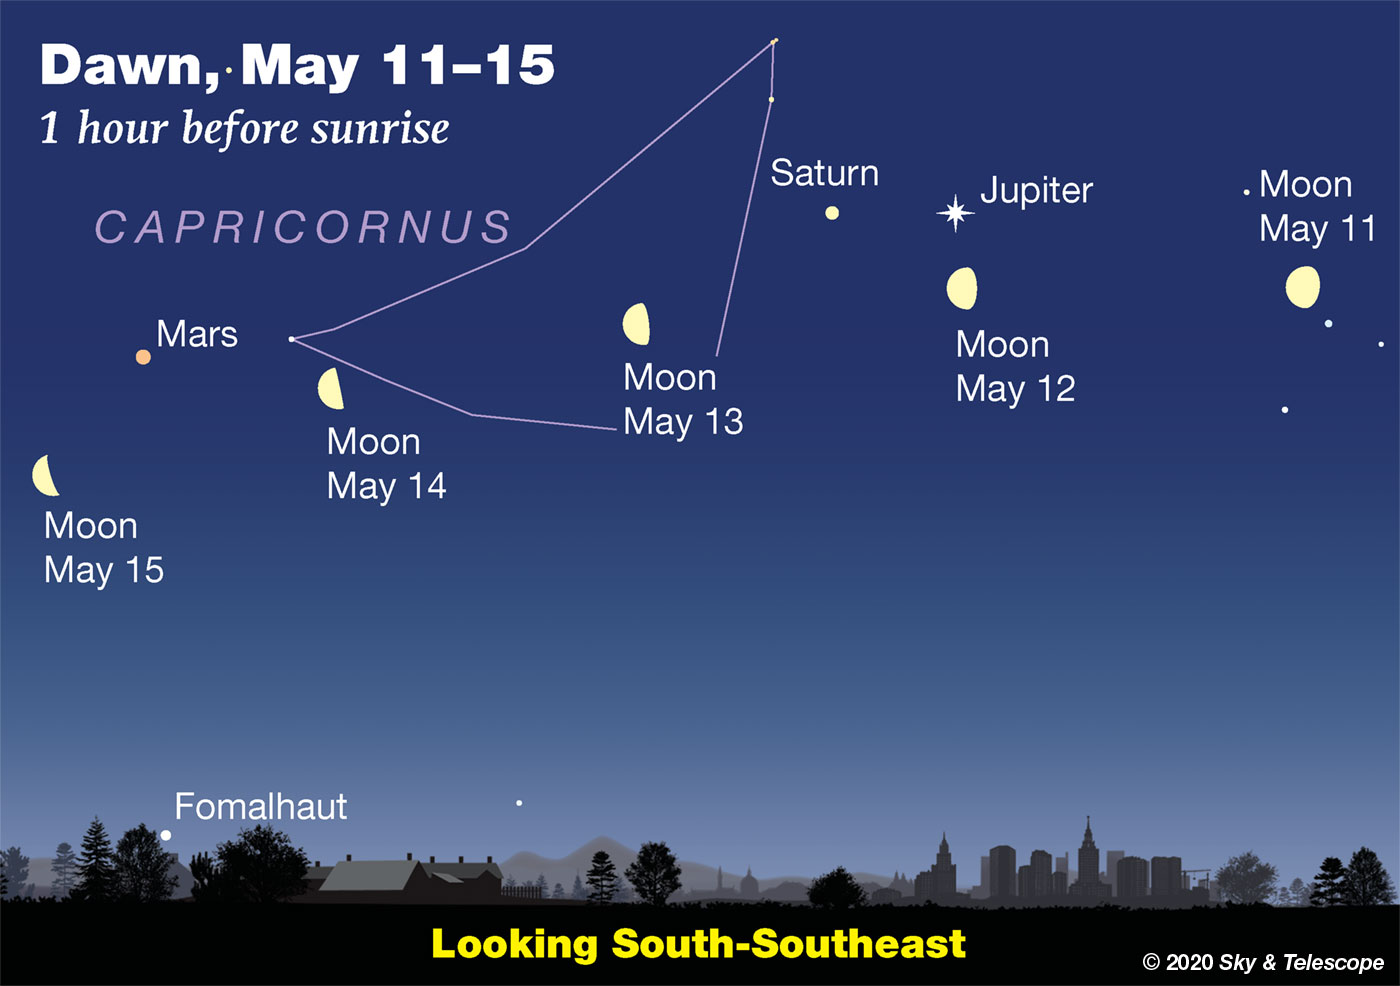 Waning Moon passing Jupiter, Saturn, and Bars in early dawn, May 11-15, 2020.